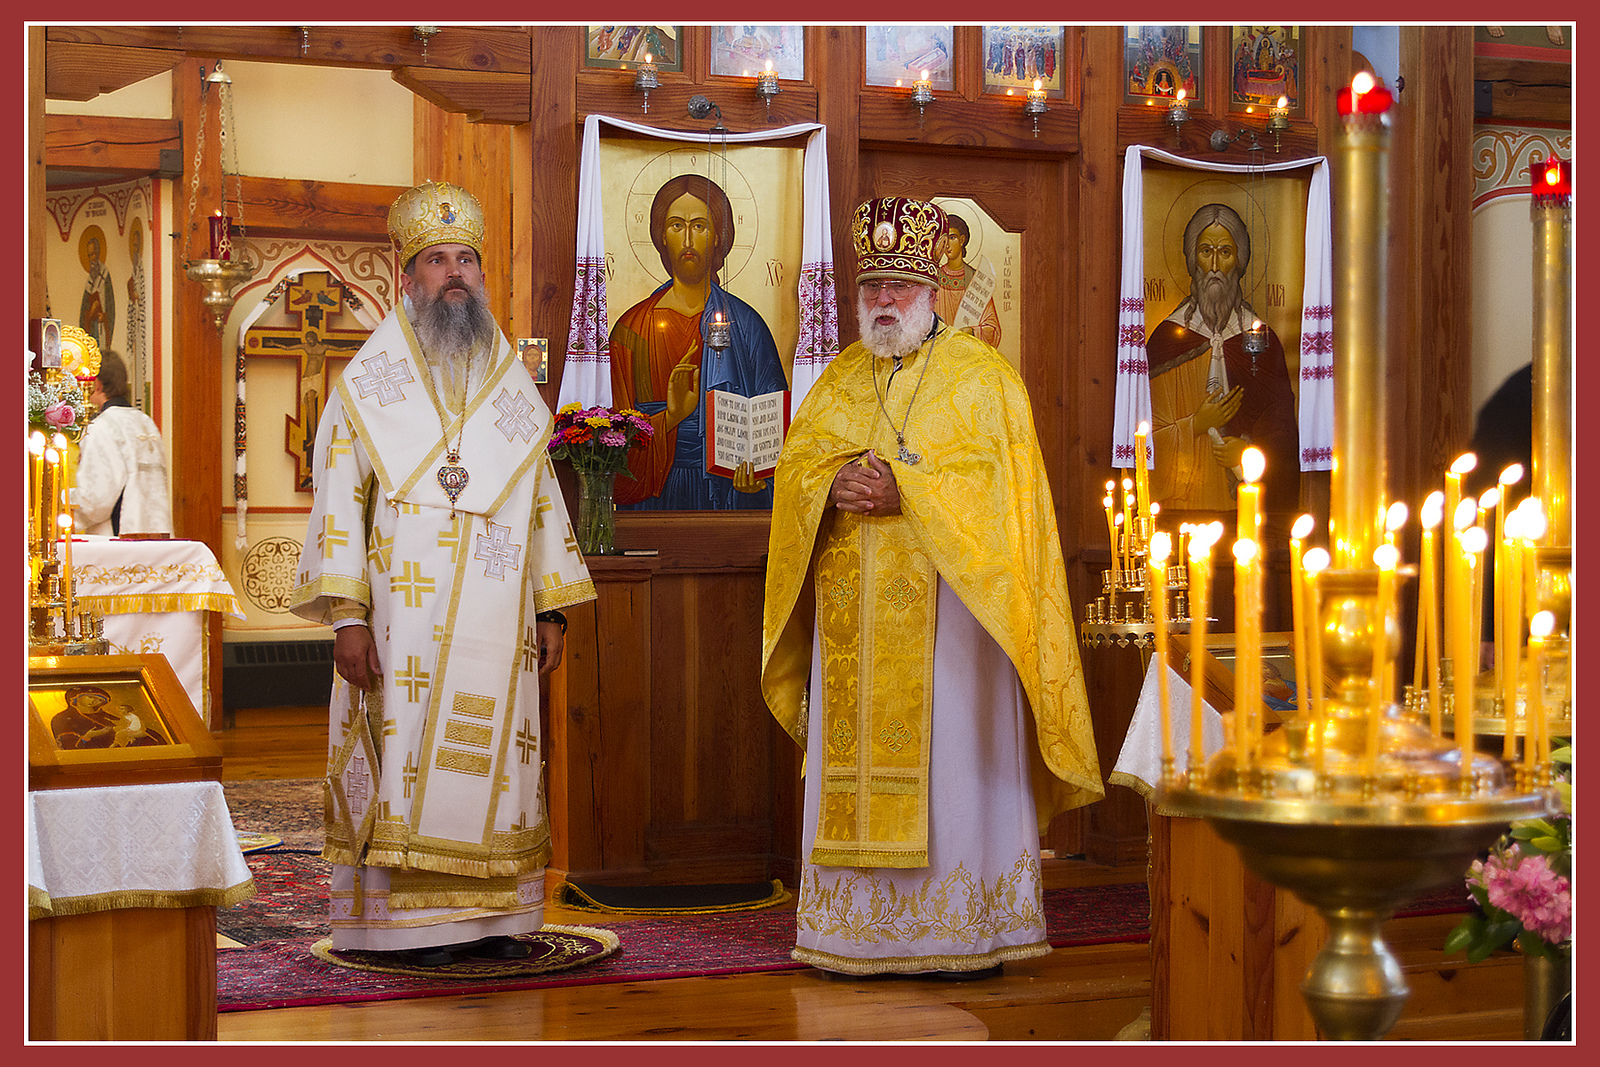 VIDEO: Bishop Benedykt of Lviv at St. Elias Church Ukrainian Catholic Church